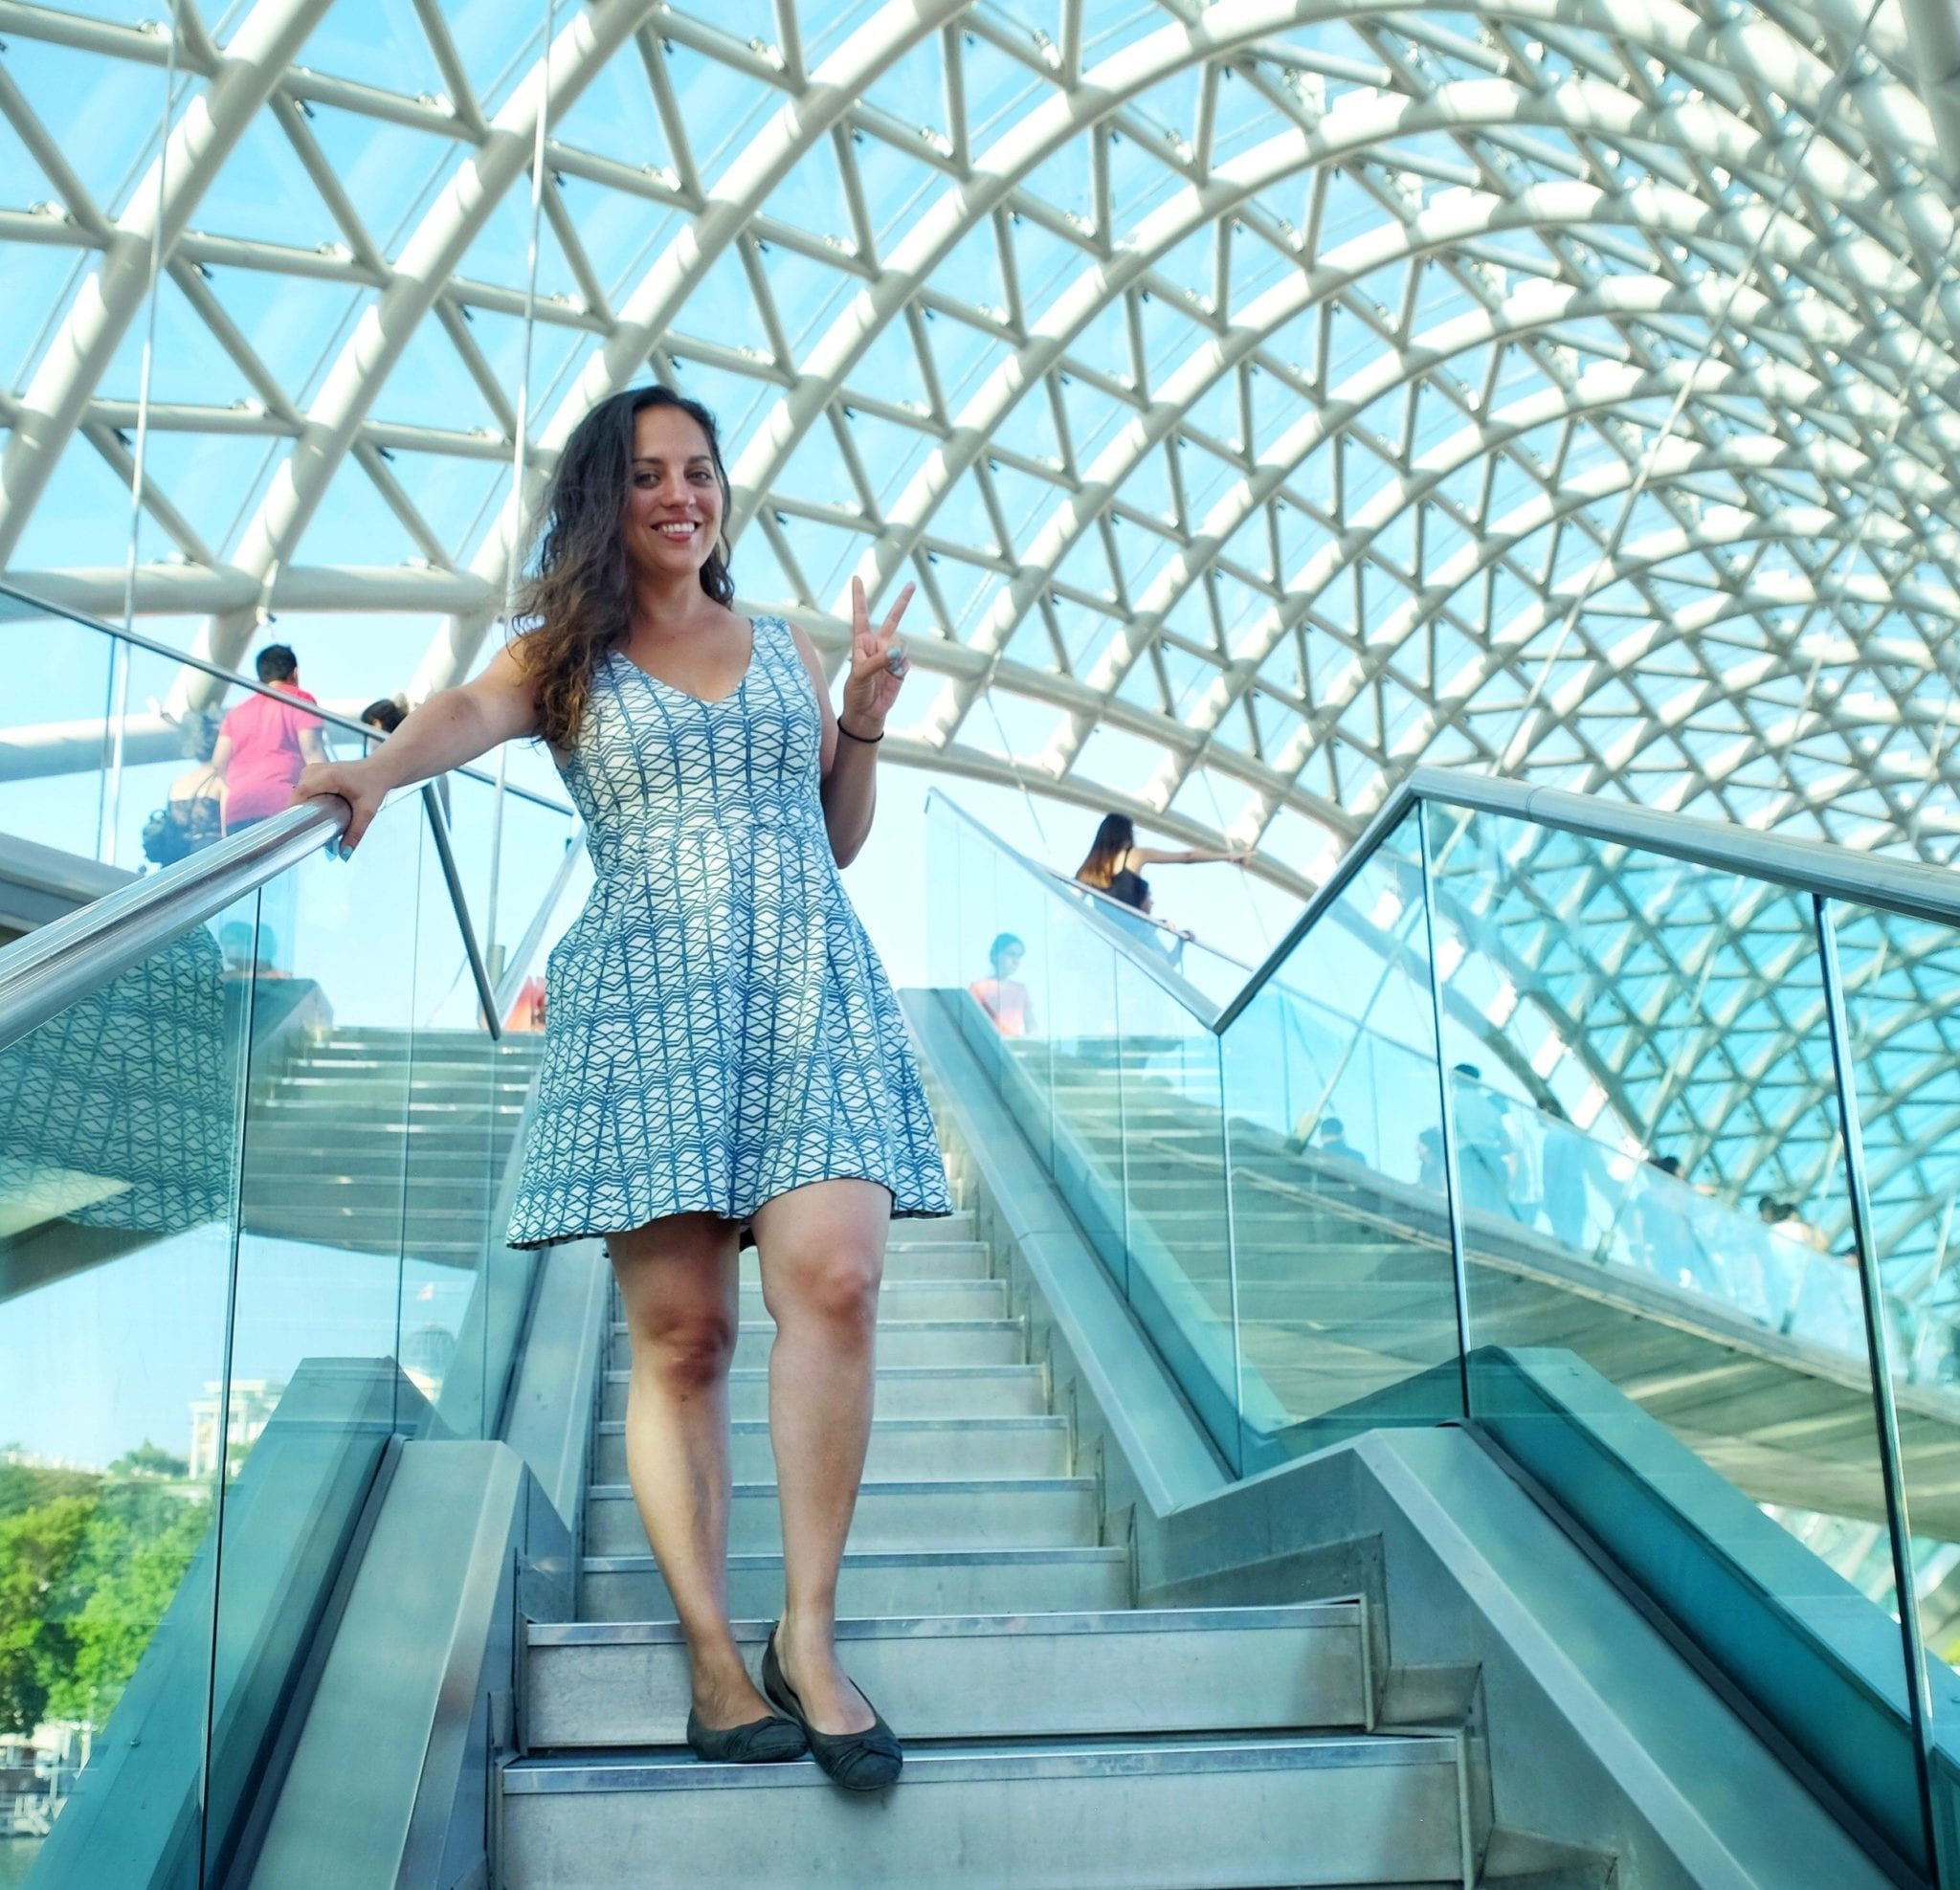 Kate stands underneath the green-and-white-patterned Peace Bridge in Tbilisi, Georgia, giving a peace sign and wearing a dress that has a very similar green and white geometric pattern.